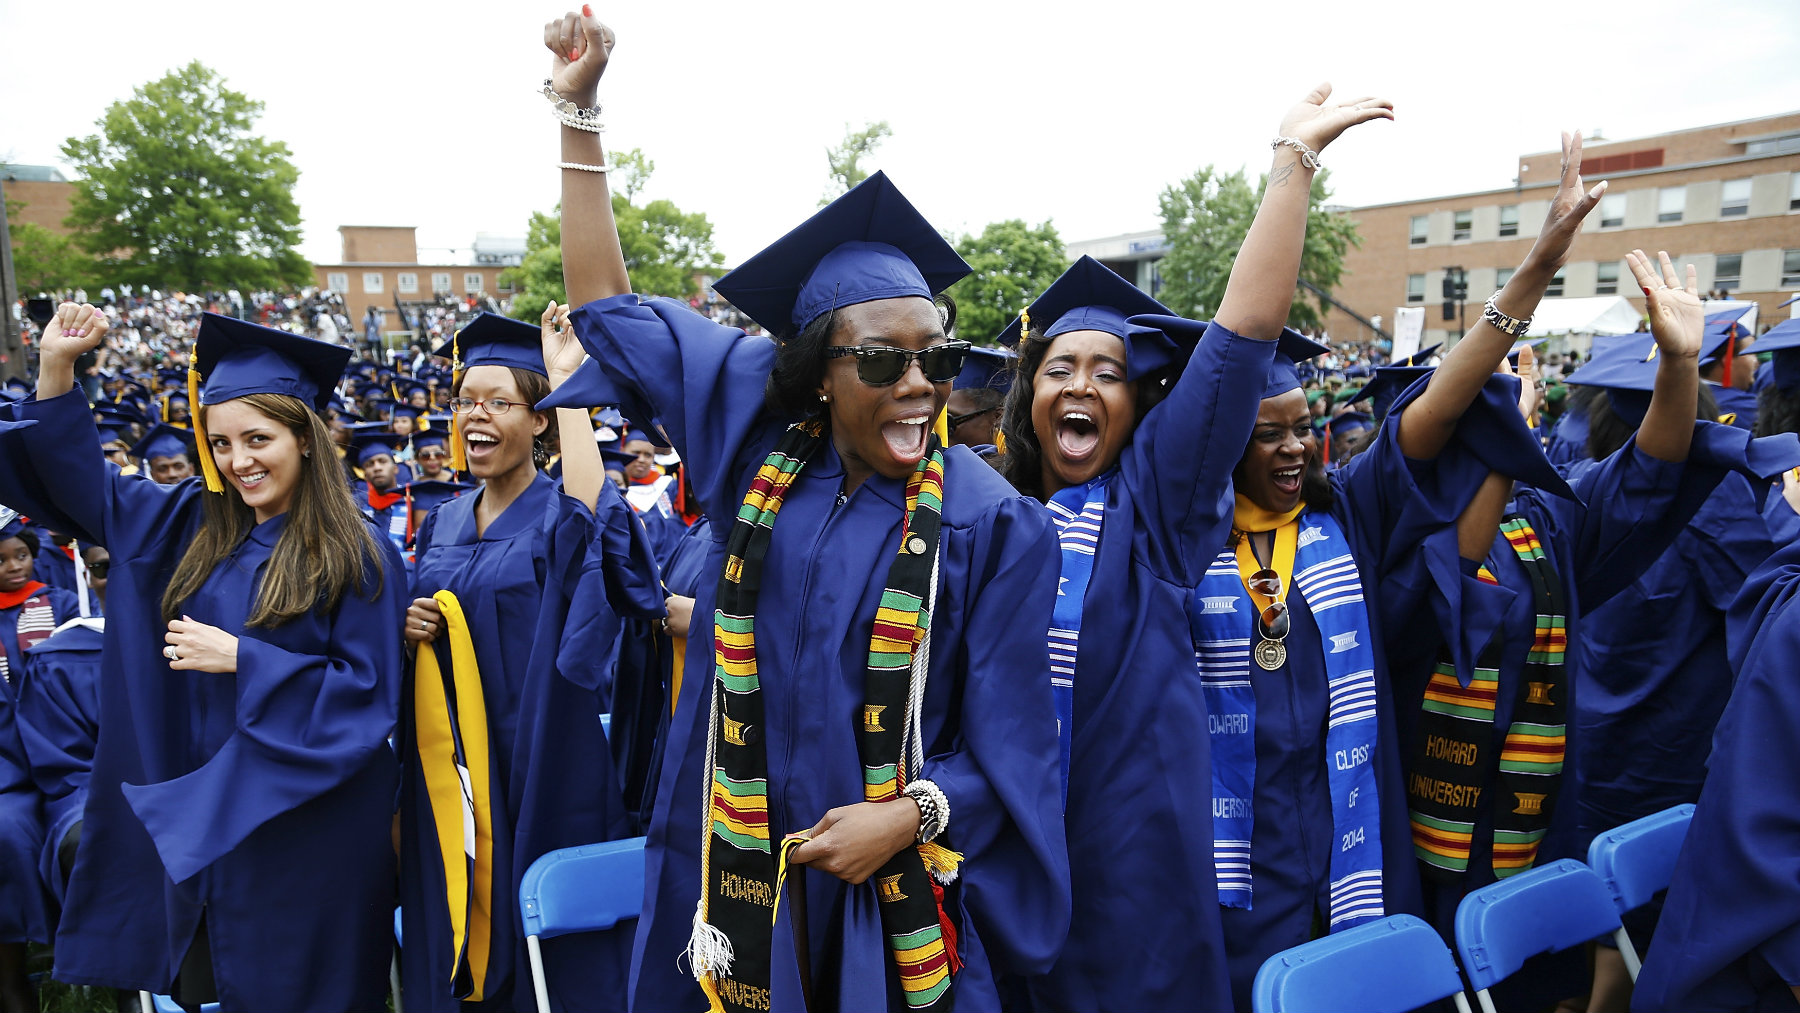 Graduates celebrate during the 2014 graduation ceremonies at Howard University in Washington May 10, 2014. Entertainer Sean Combs delivered the commencement address and received an honorary degree in Humanities during the ceremony. REUTERS/Jonathan Ernst (UNITED STATES - Tags: EDUCATION ENTERTAINMENT SOCIETY)